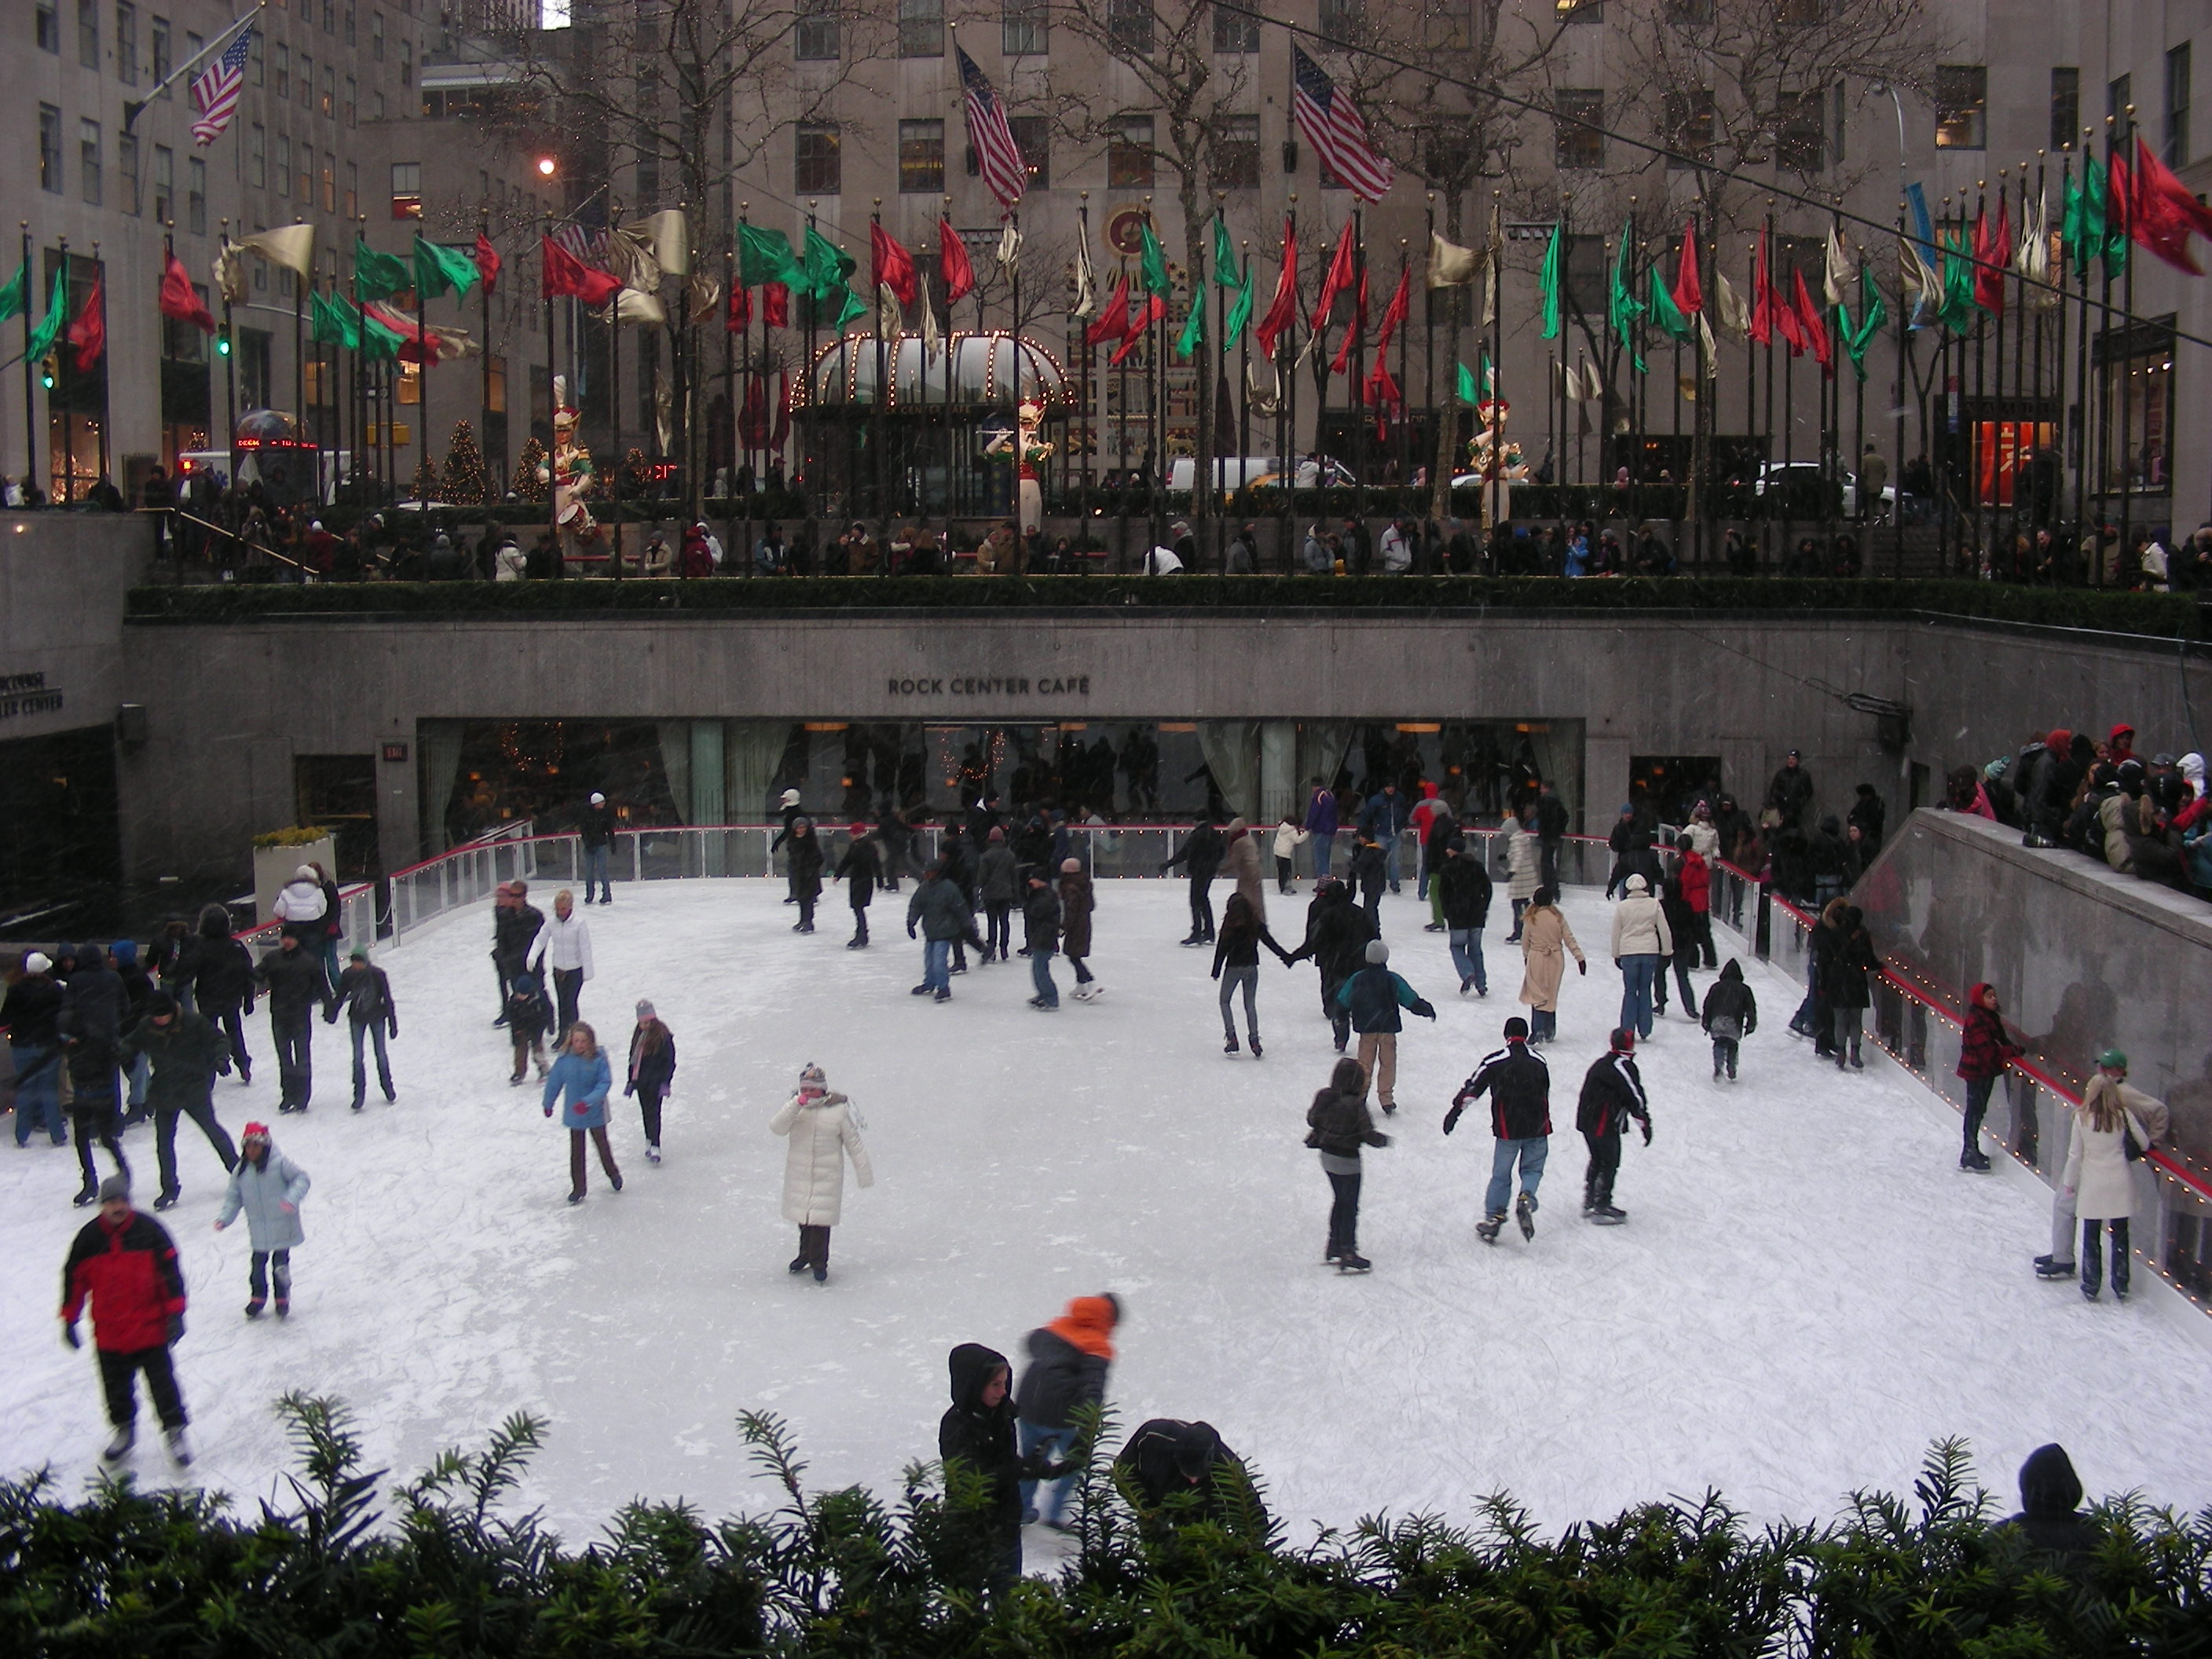 Ice rink at Rockefeller in New York. Photo by Alphacityguides